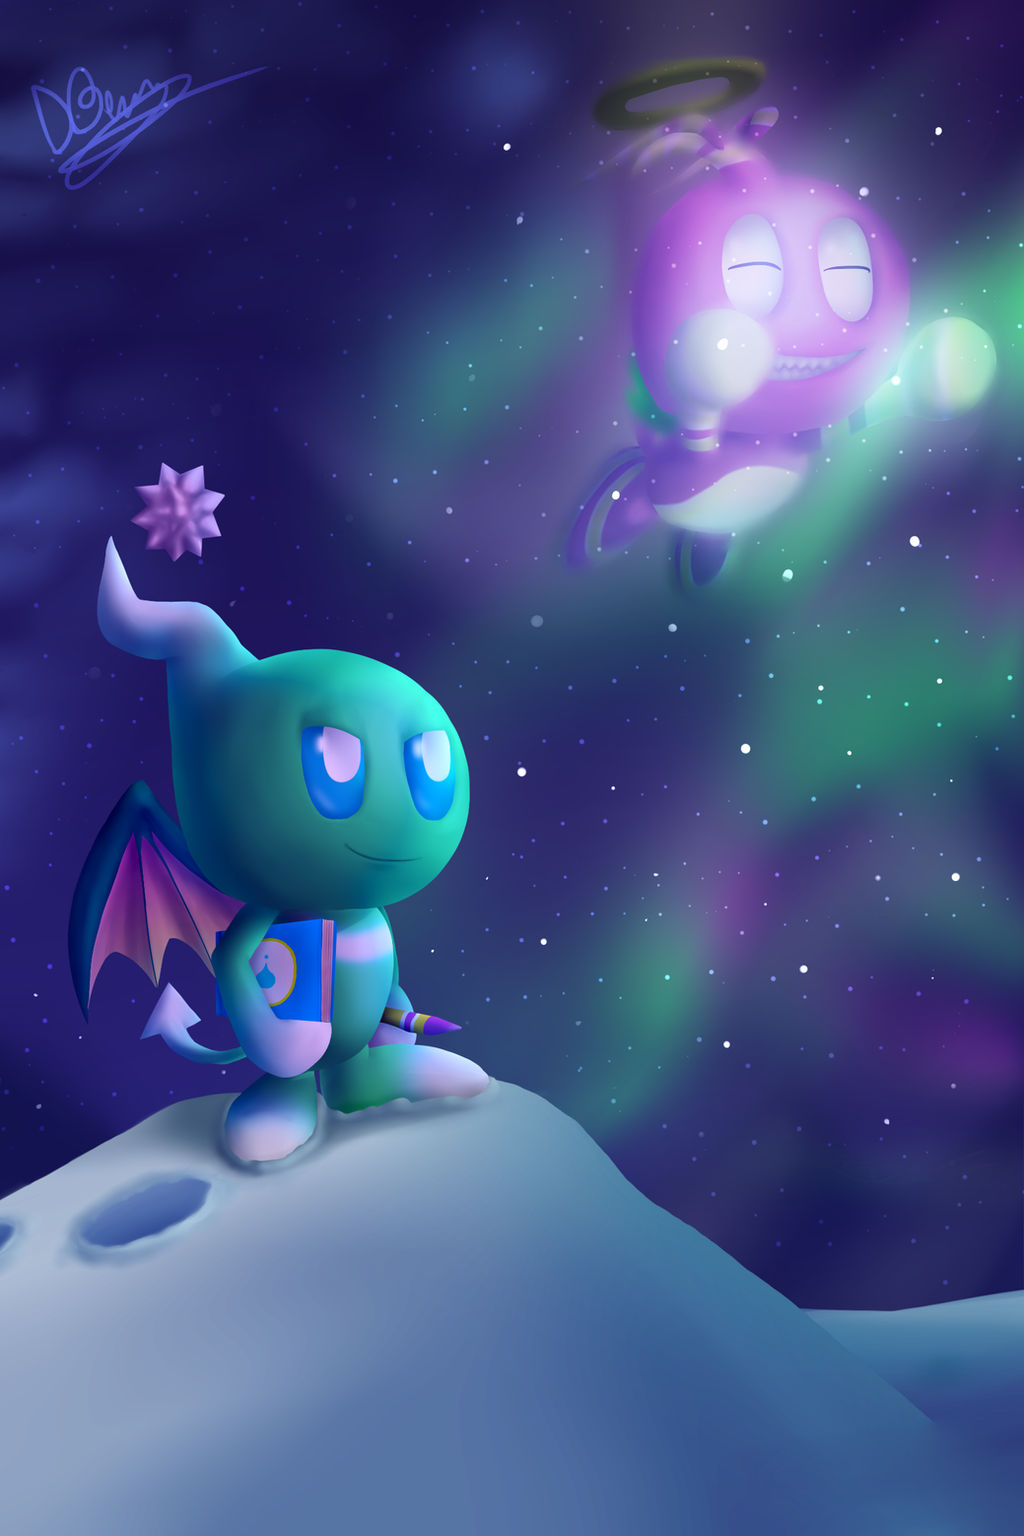 Chao World - Imagine a new Chao